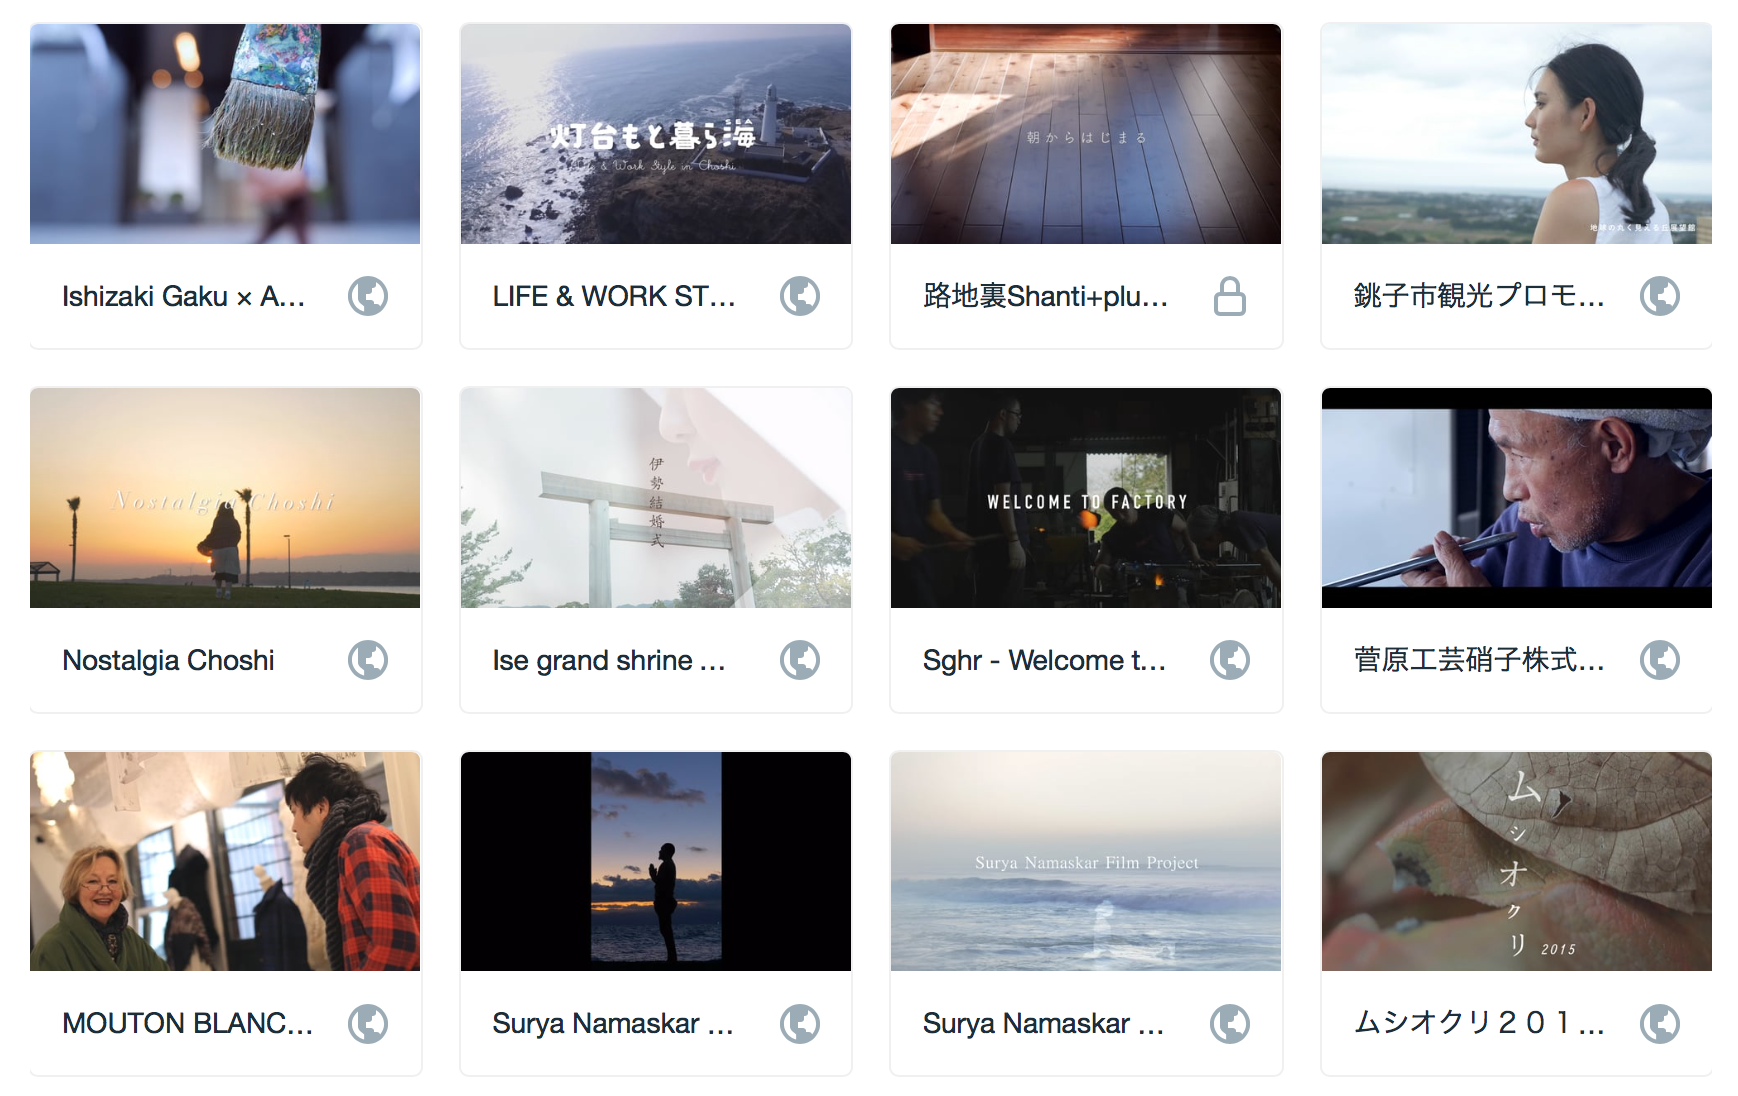 and more → Vimeo